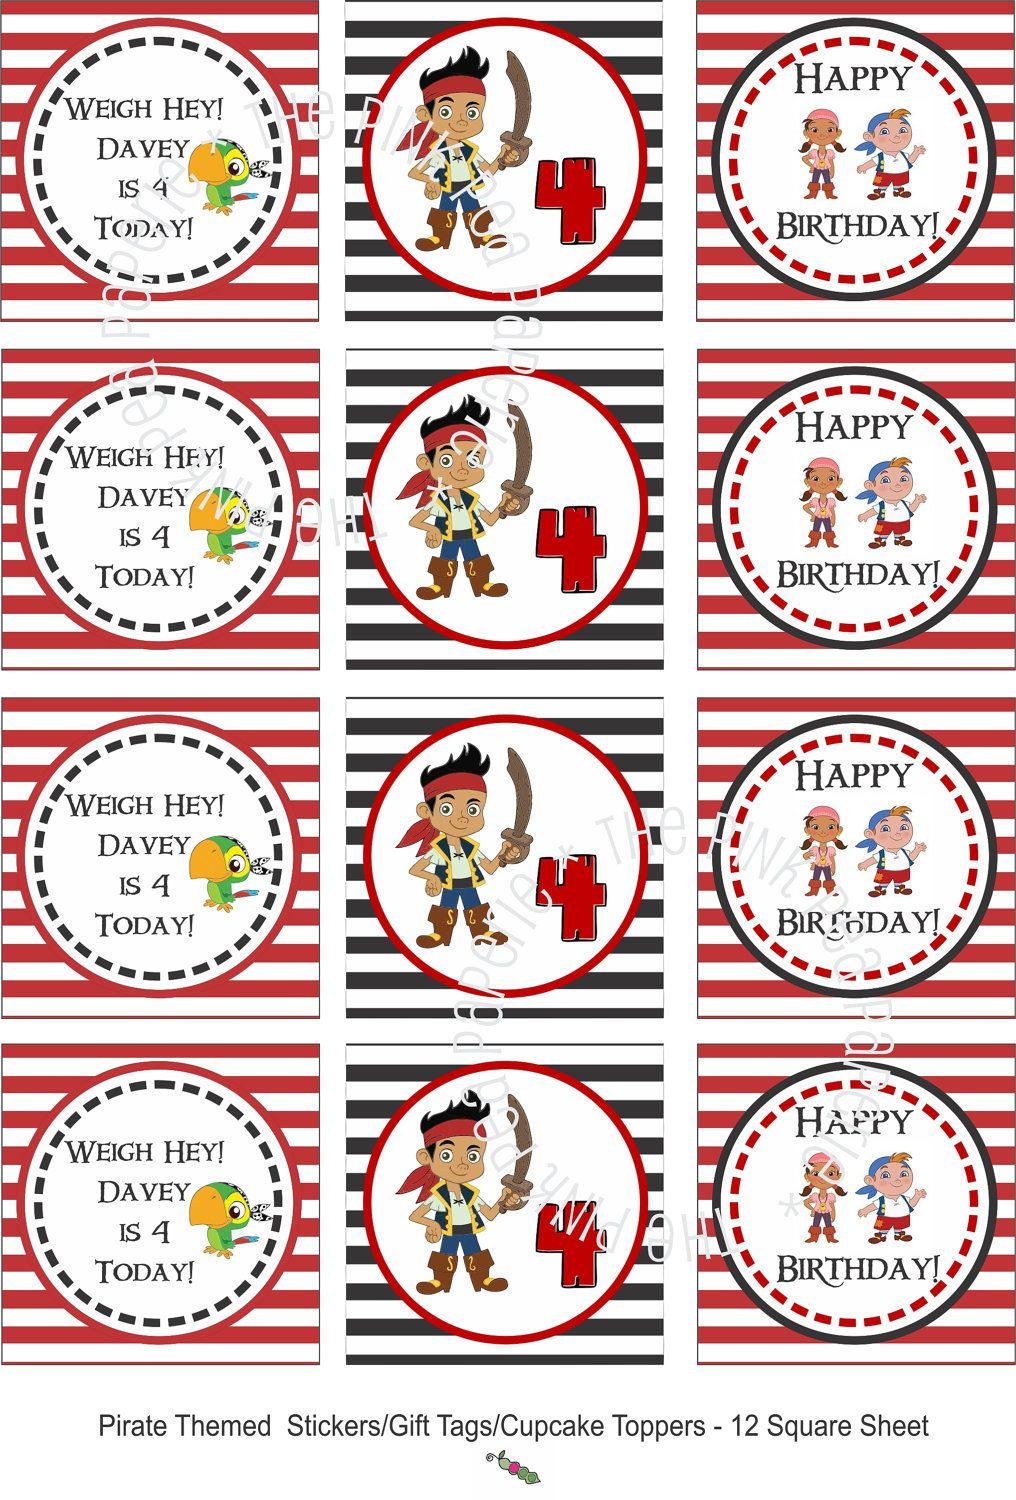 Custom Printable Jake And The Neverland Pirates Stickers Or Gift - Free Printable Jake And The Neverland Pirates Cupcake Toppers